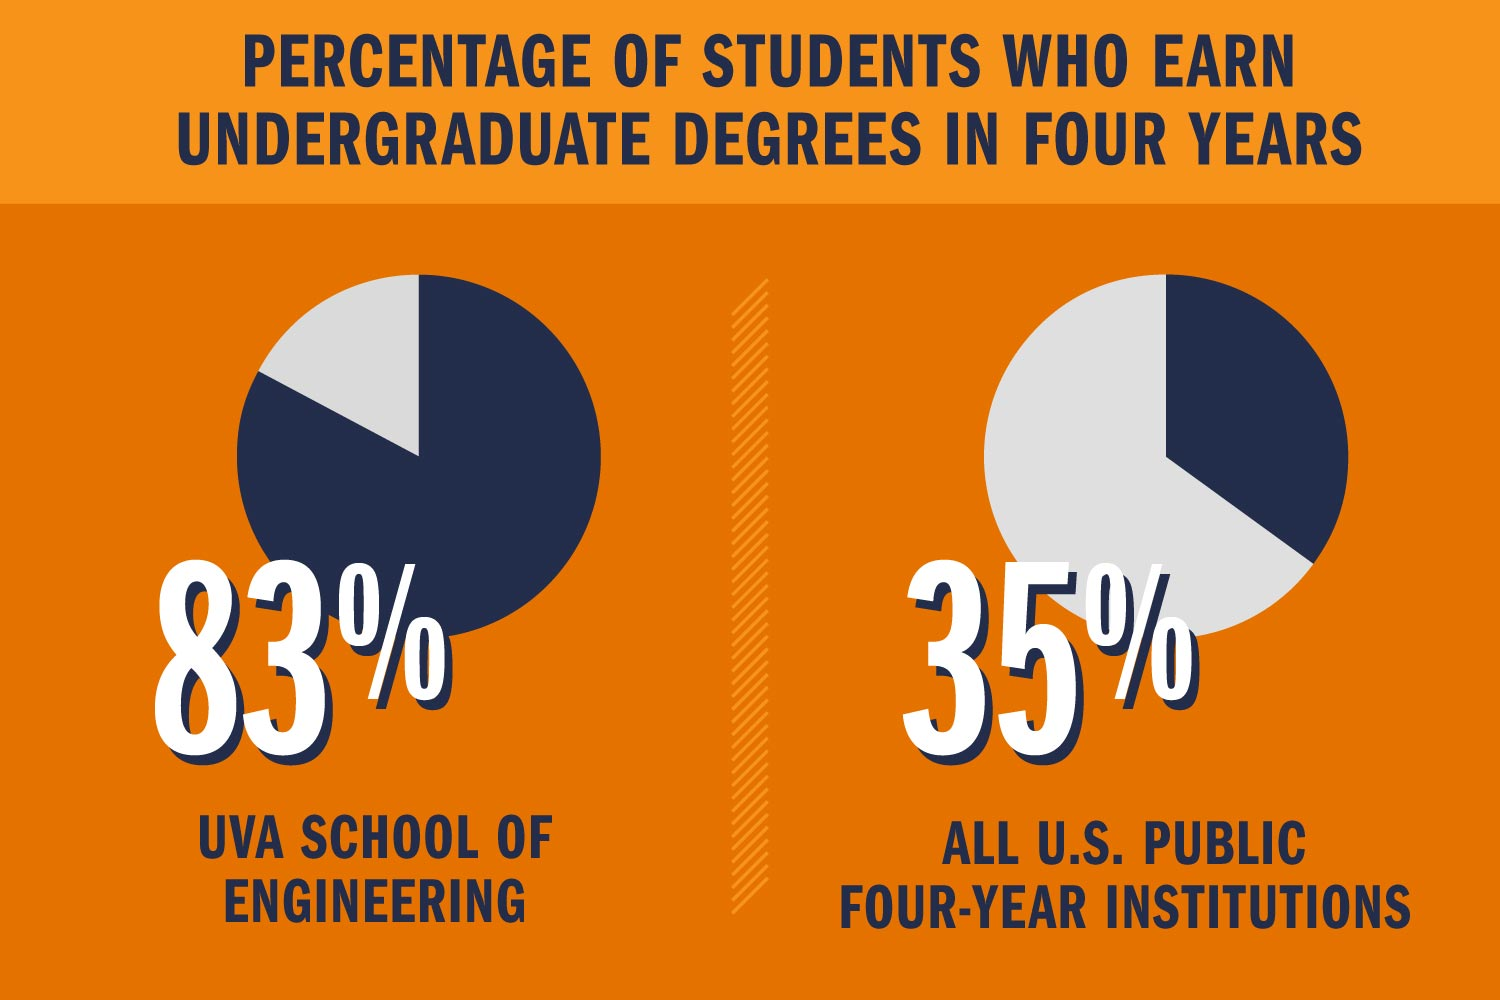 Percentage of students who earn undergraduate degrees in four years. UVA School of Engineering: 83 percent. All U.S. public four-year institutions: 35 percent.